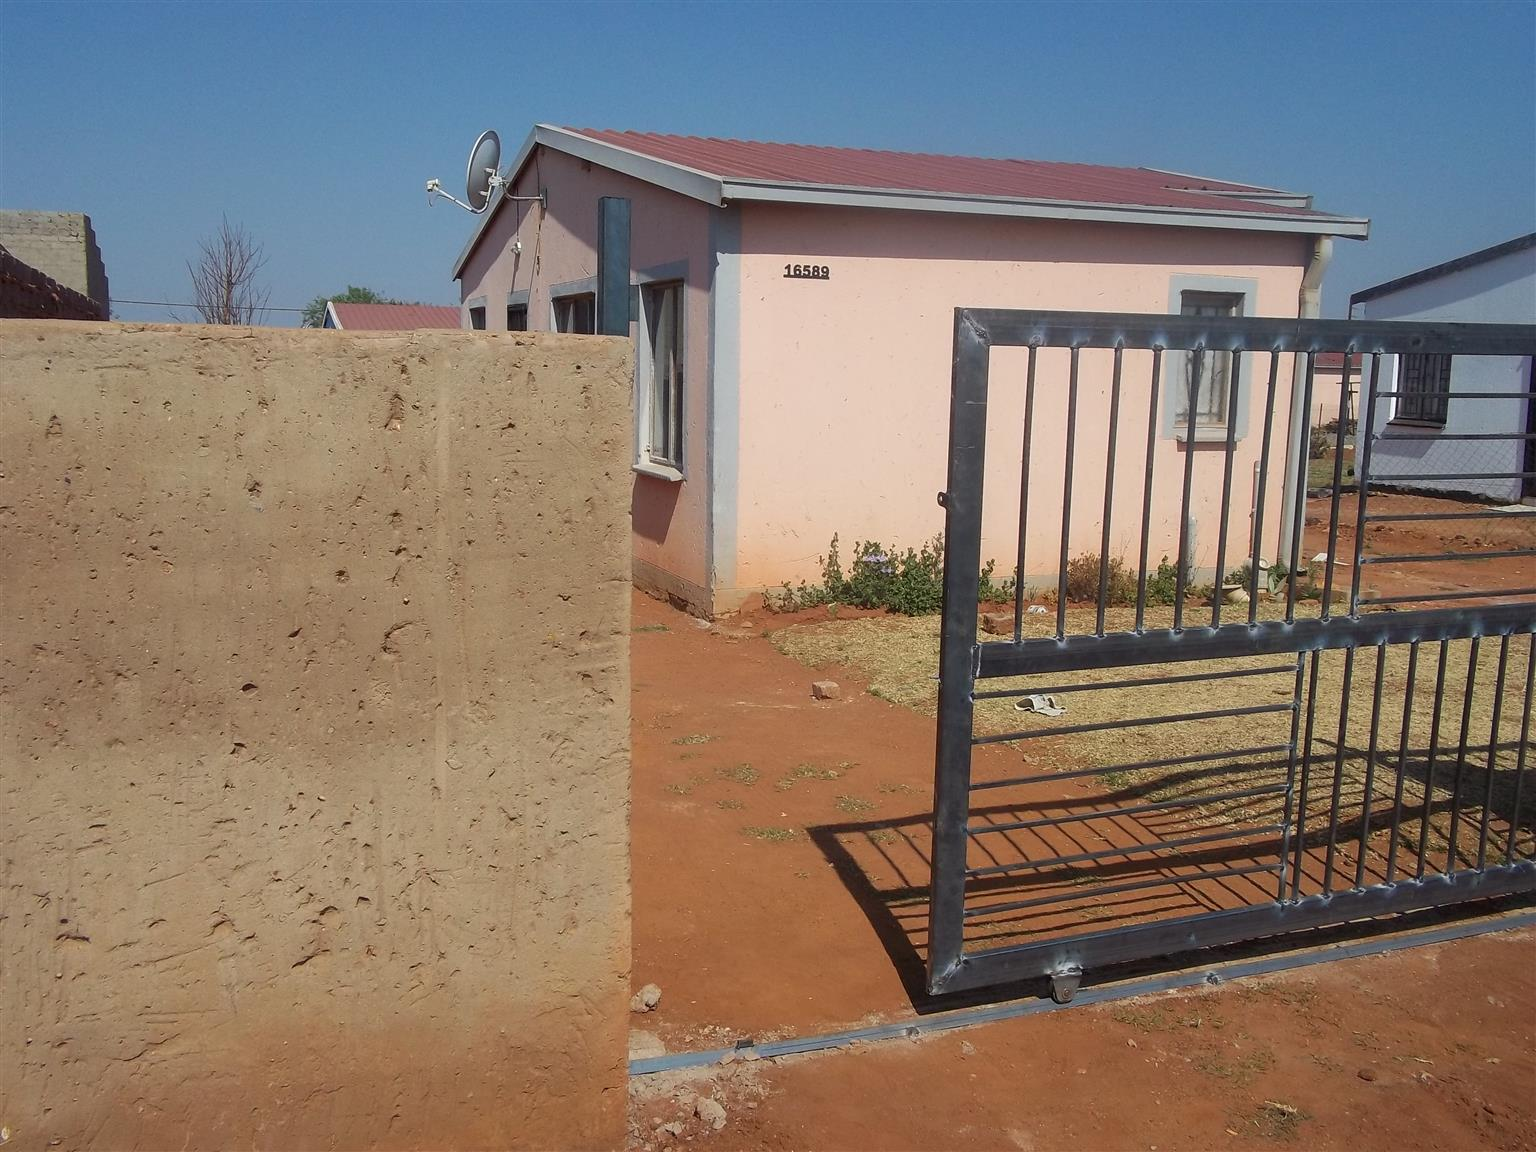 Three bedroom house to rent in Glenridge, R3700 with wall and gate, Empty now